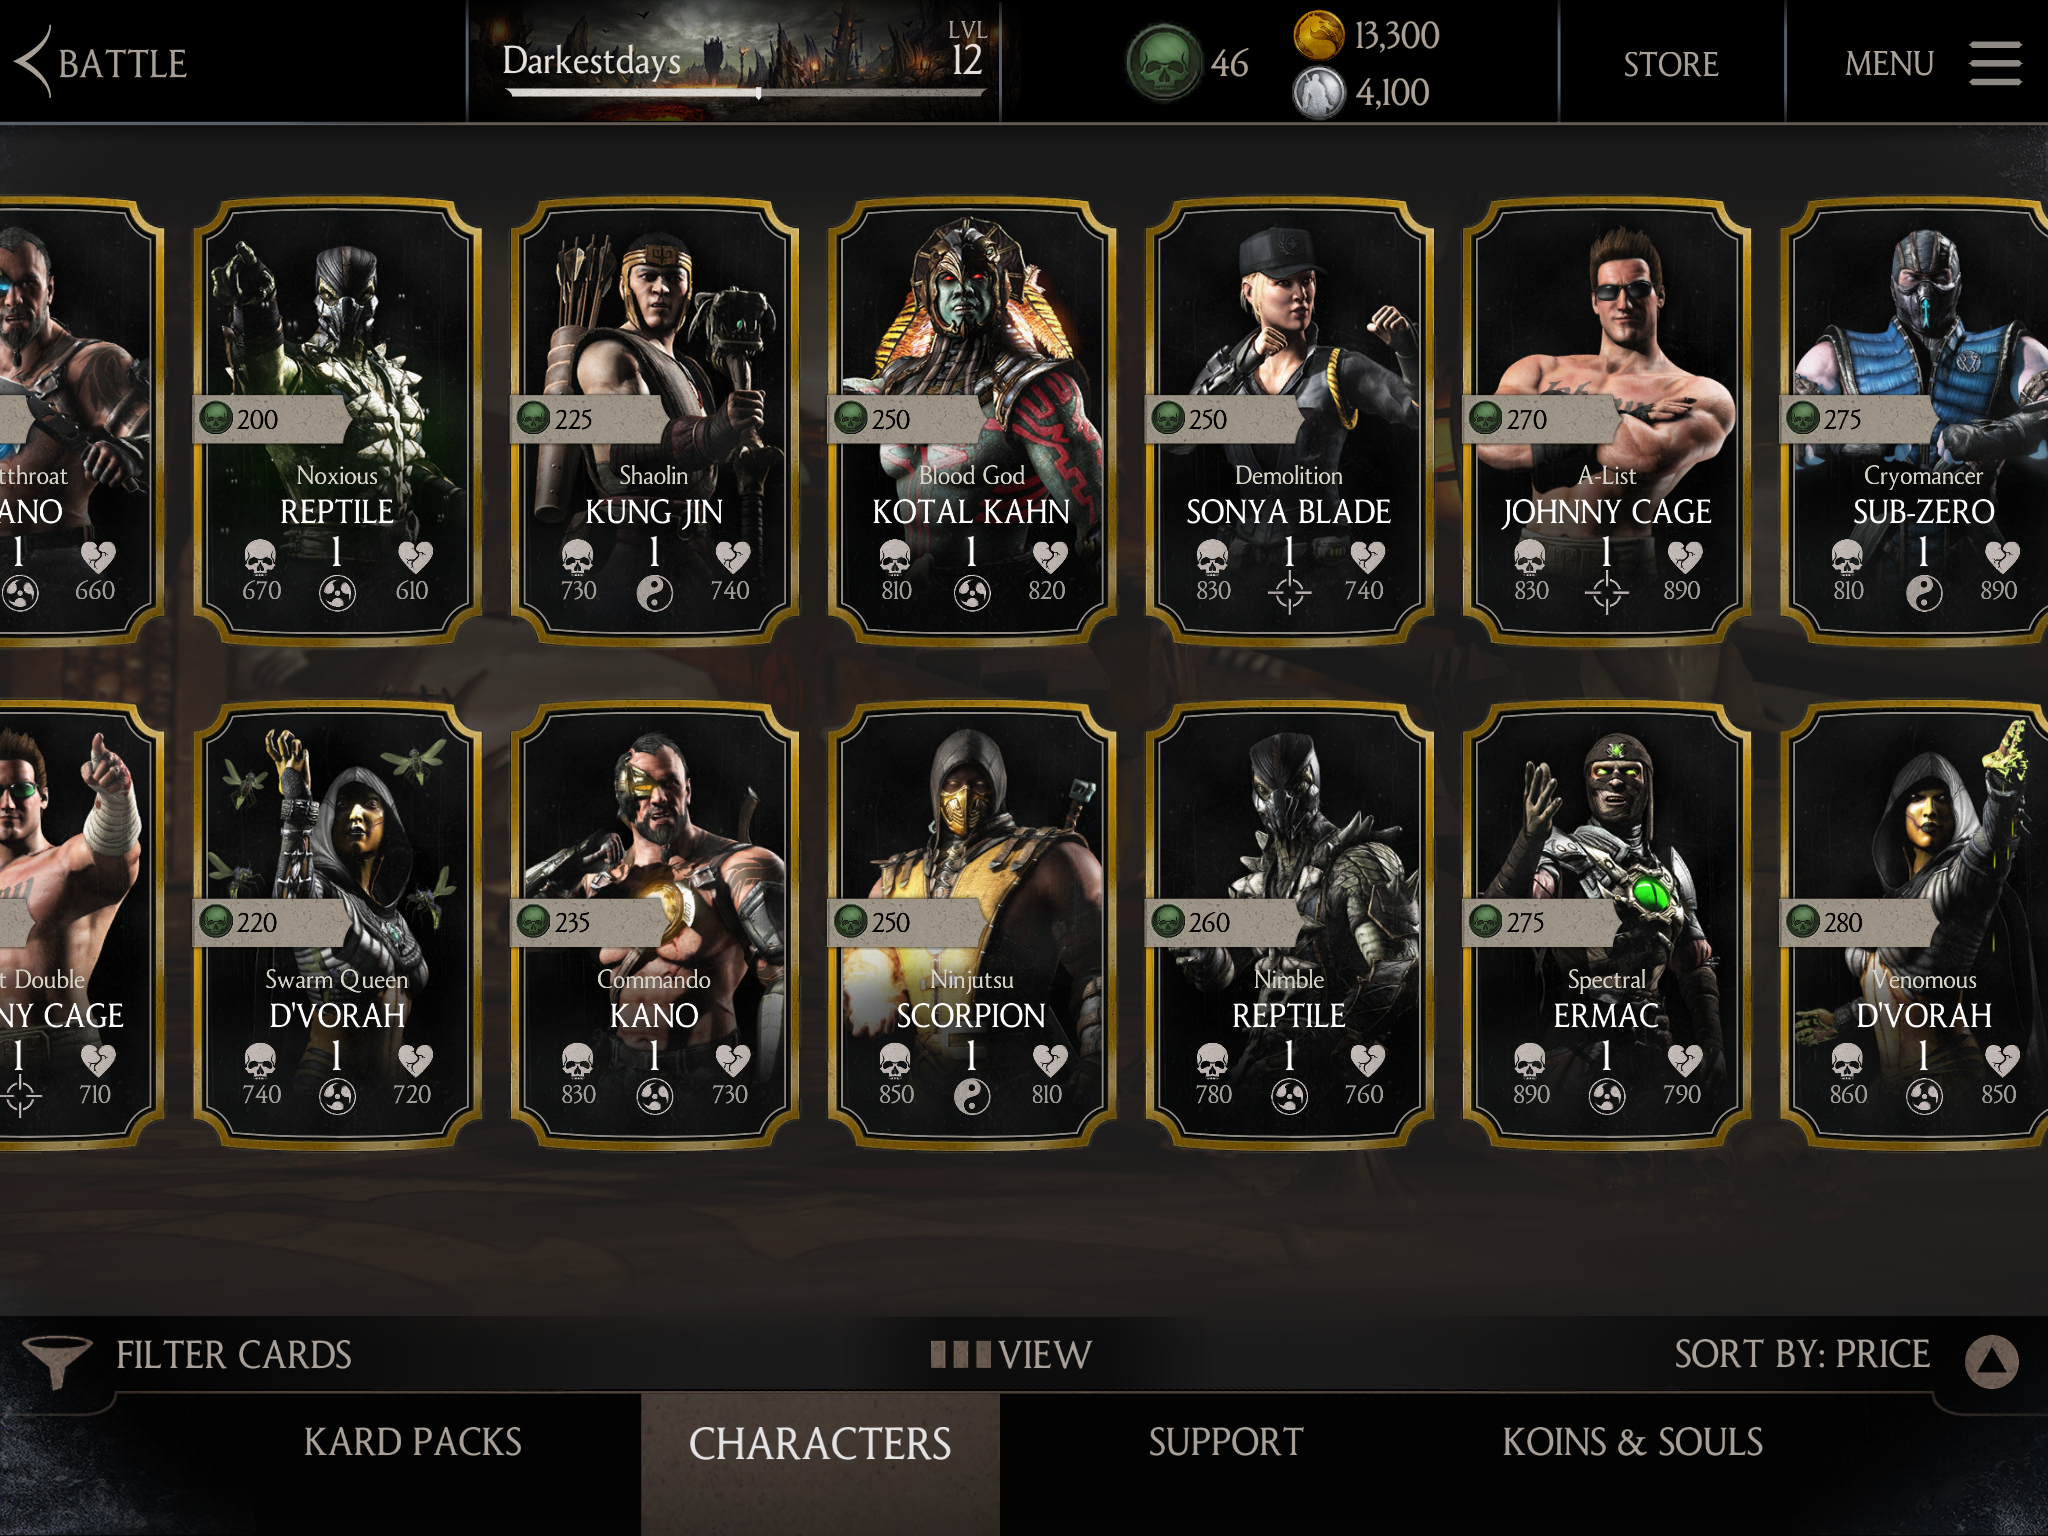 Injustice Starter Pack Characters Photo Apr